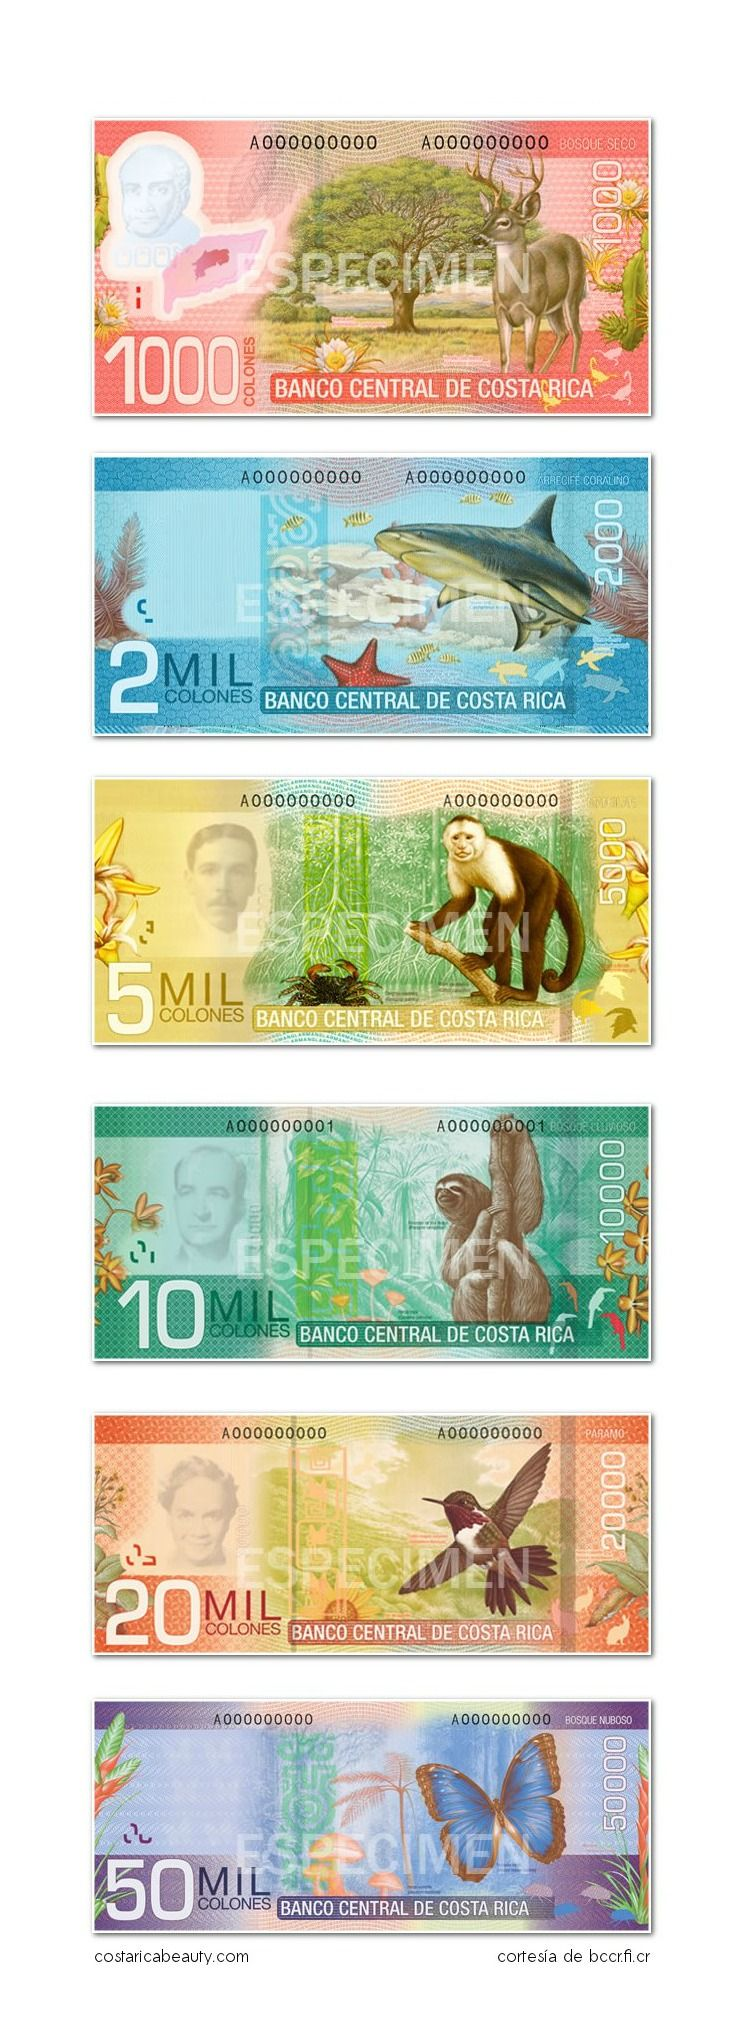 This Is The Costa Rican Money Called Colones Number You See Taken Times 2 To Get Value In American Dollars So For Example Blue Shark